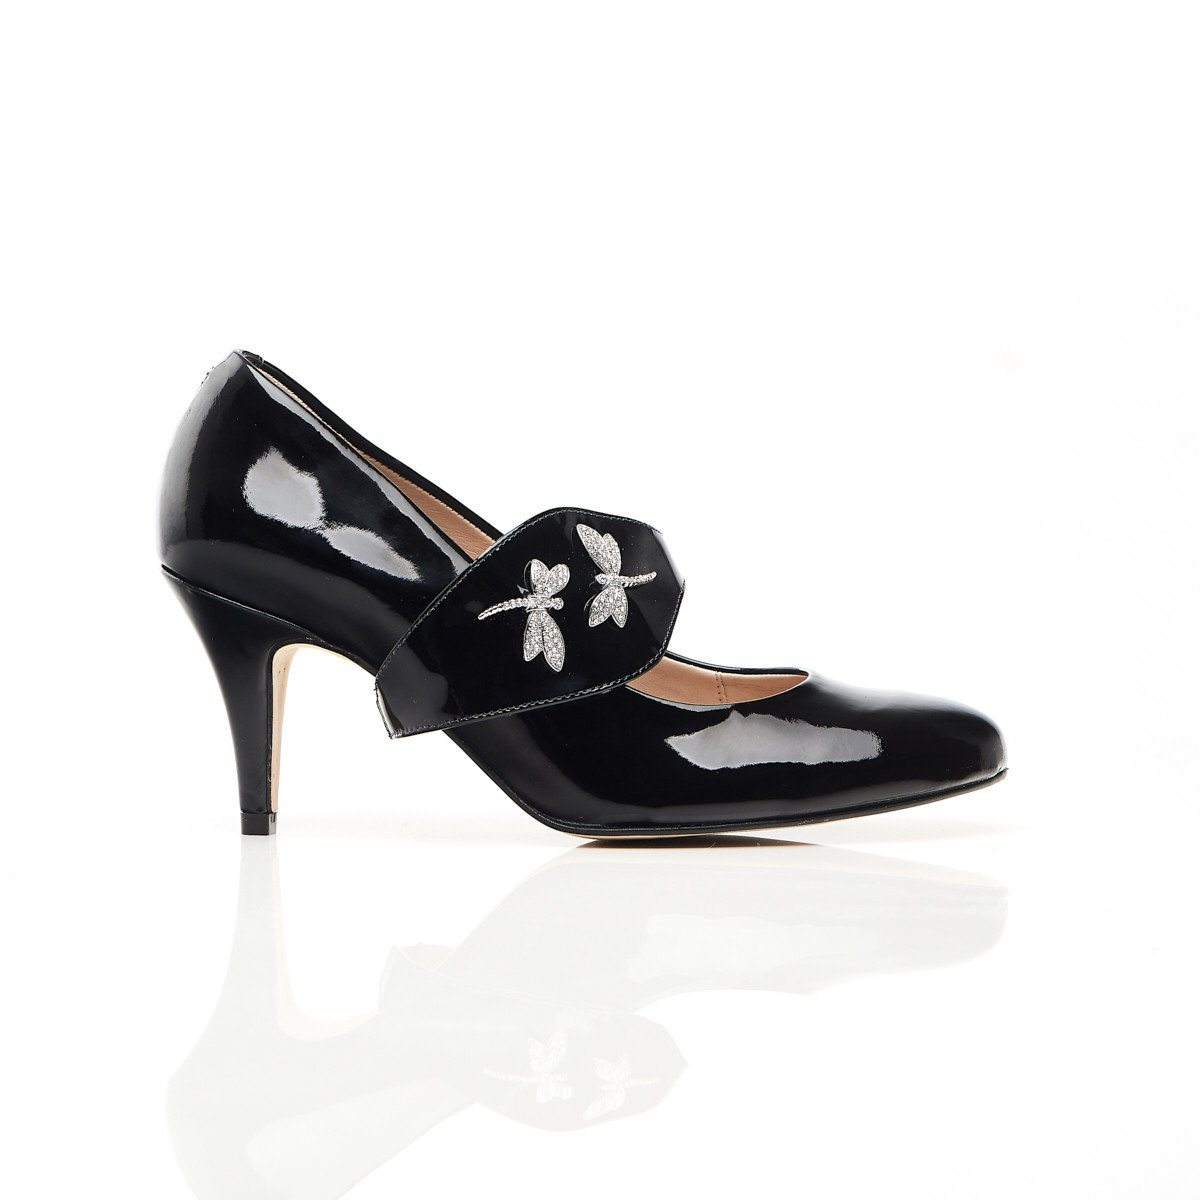 Black Patent Leather Shoes - Dragonfly